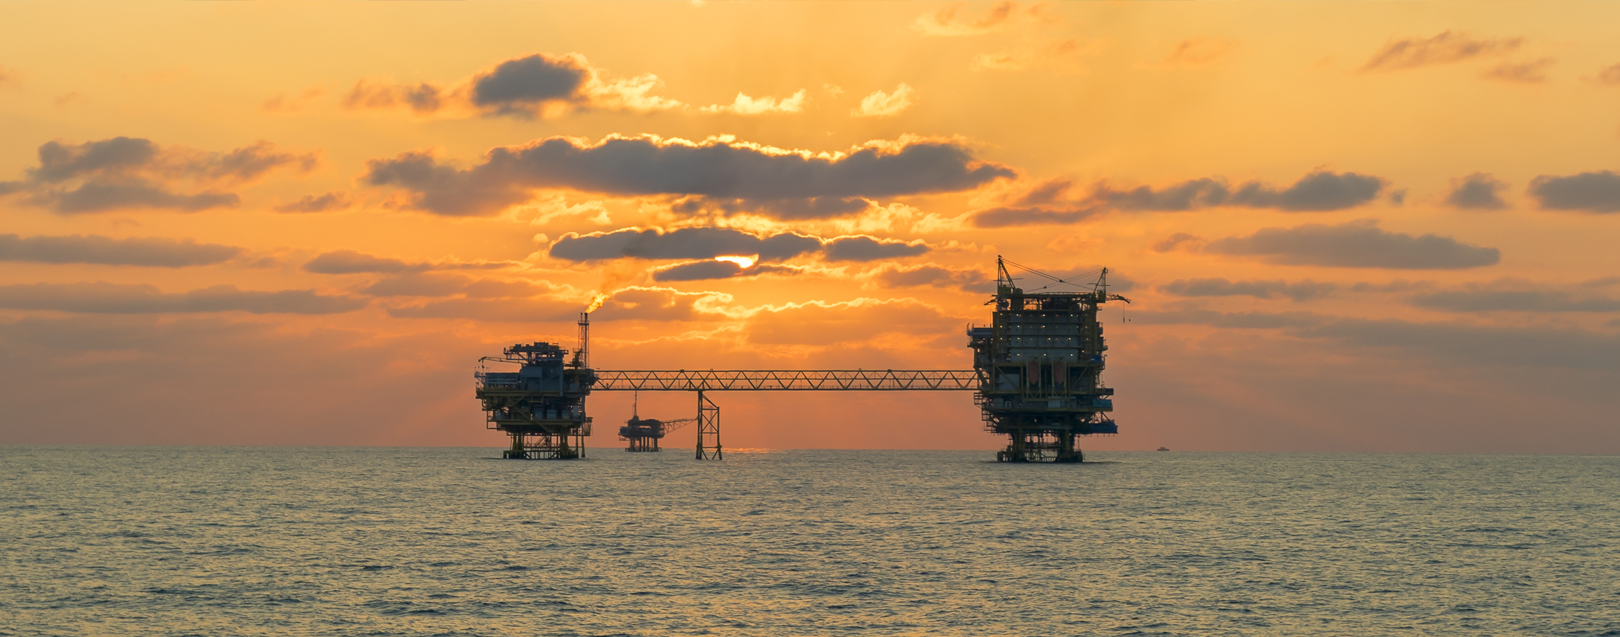 ONGC to bid for Israeli oil and gas exploration